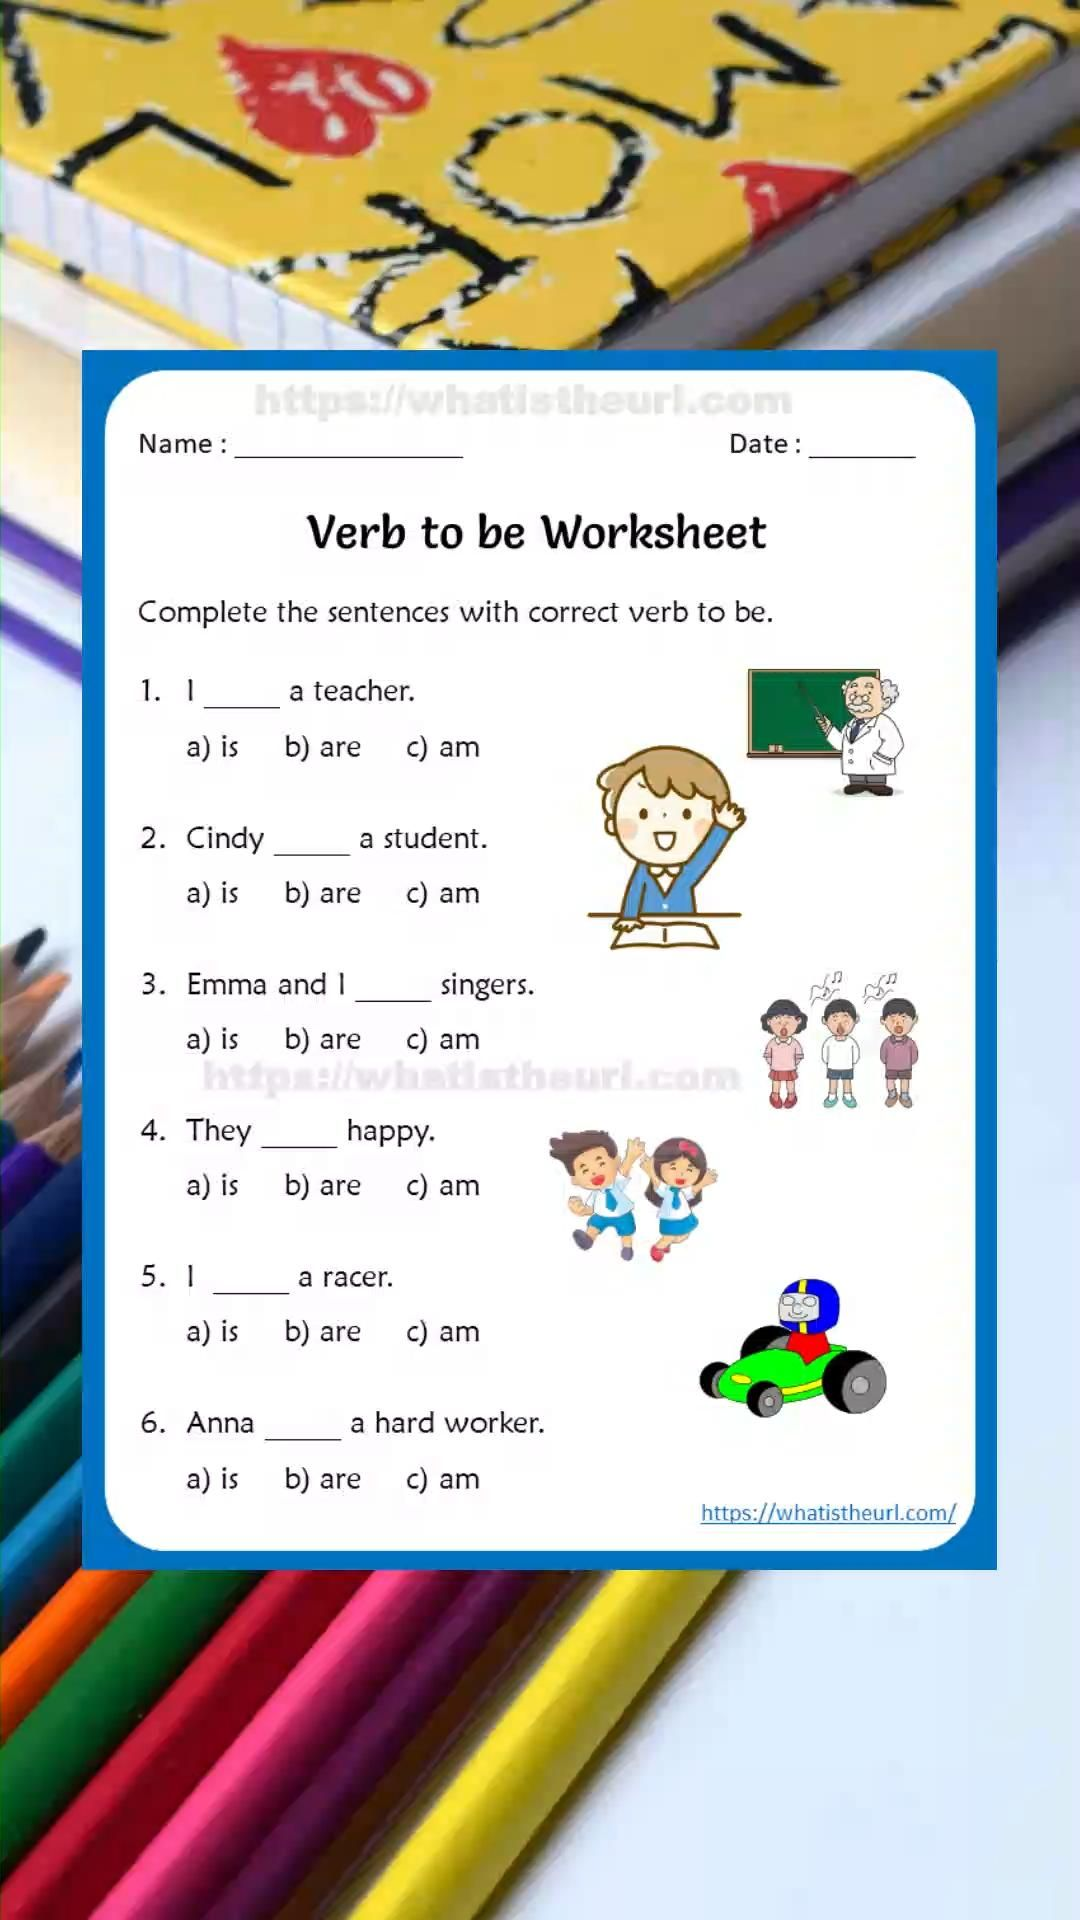 Verb To Be Worksheets For Kids Video English Grammar For Kids English Activities For Kids Grammar For Kids [ 1920 x 1080 Pixel ]